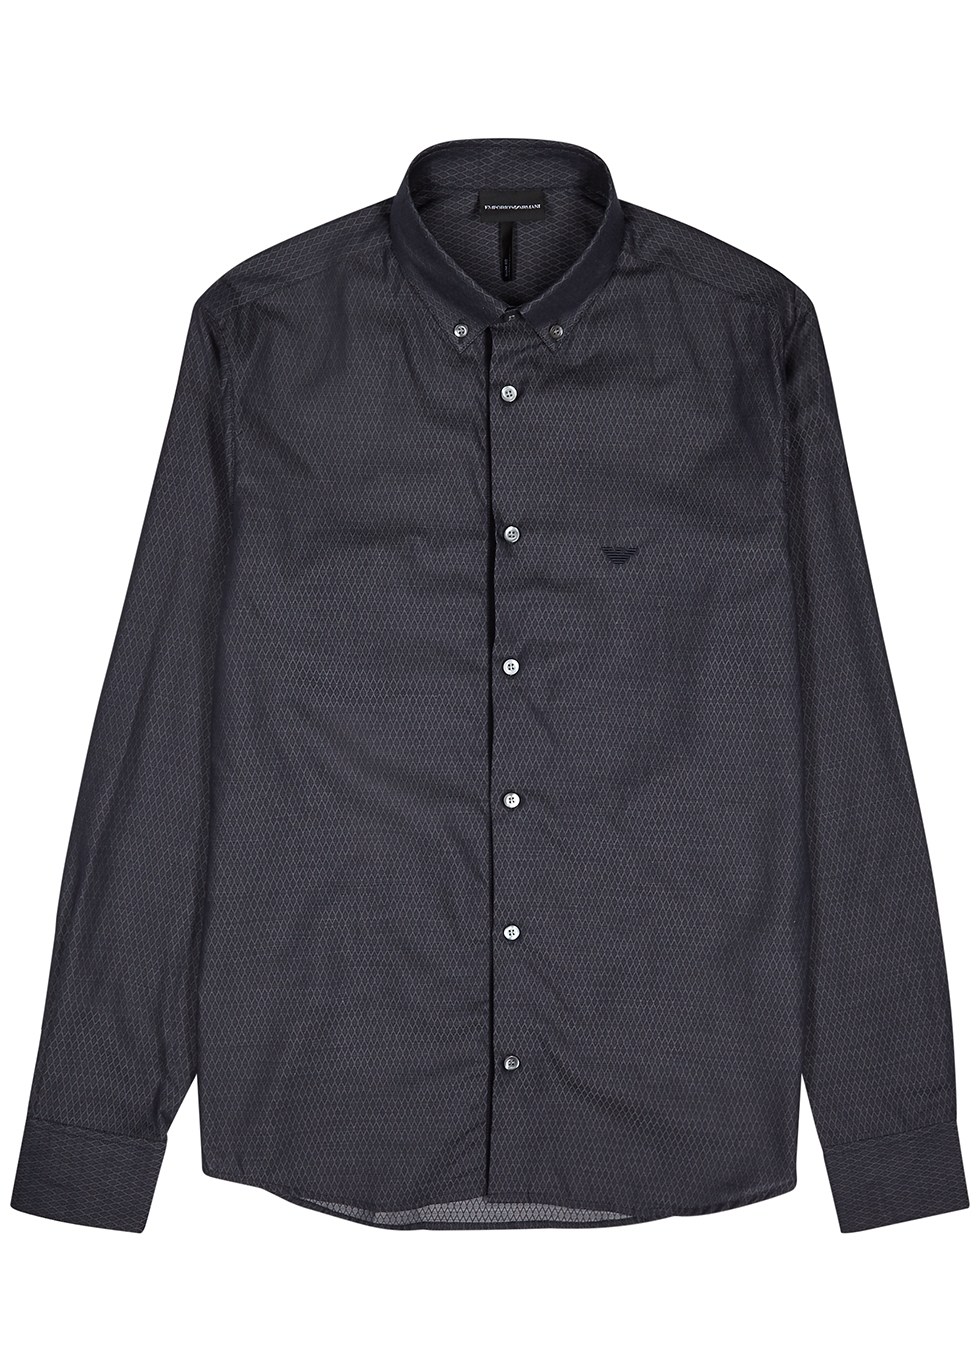 Midnight blue jacquard cotton shirt